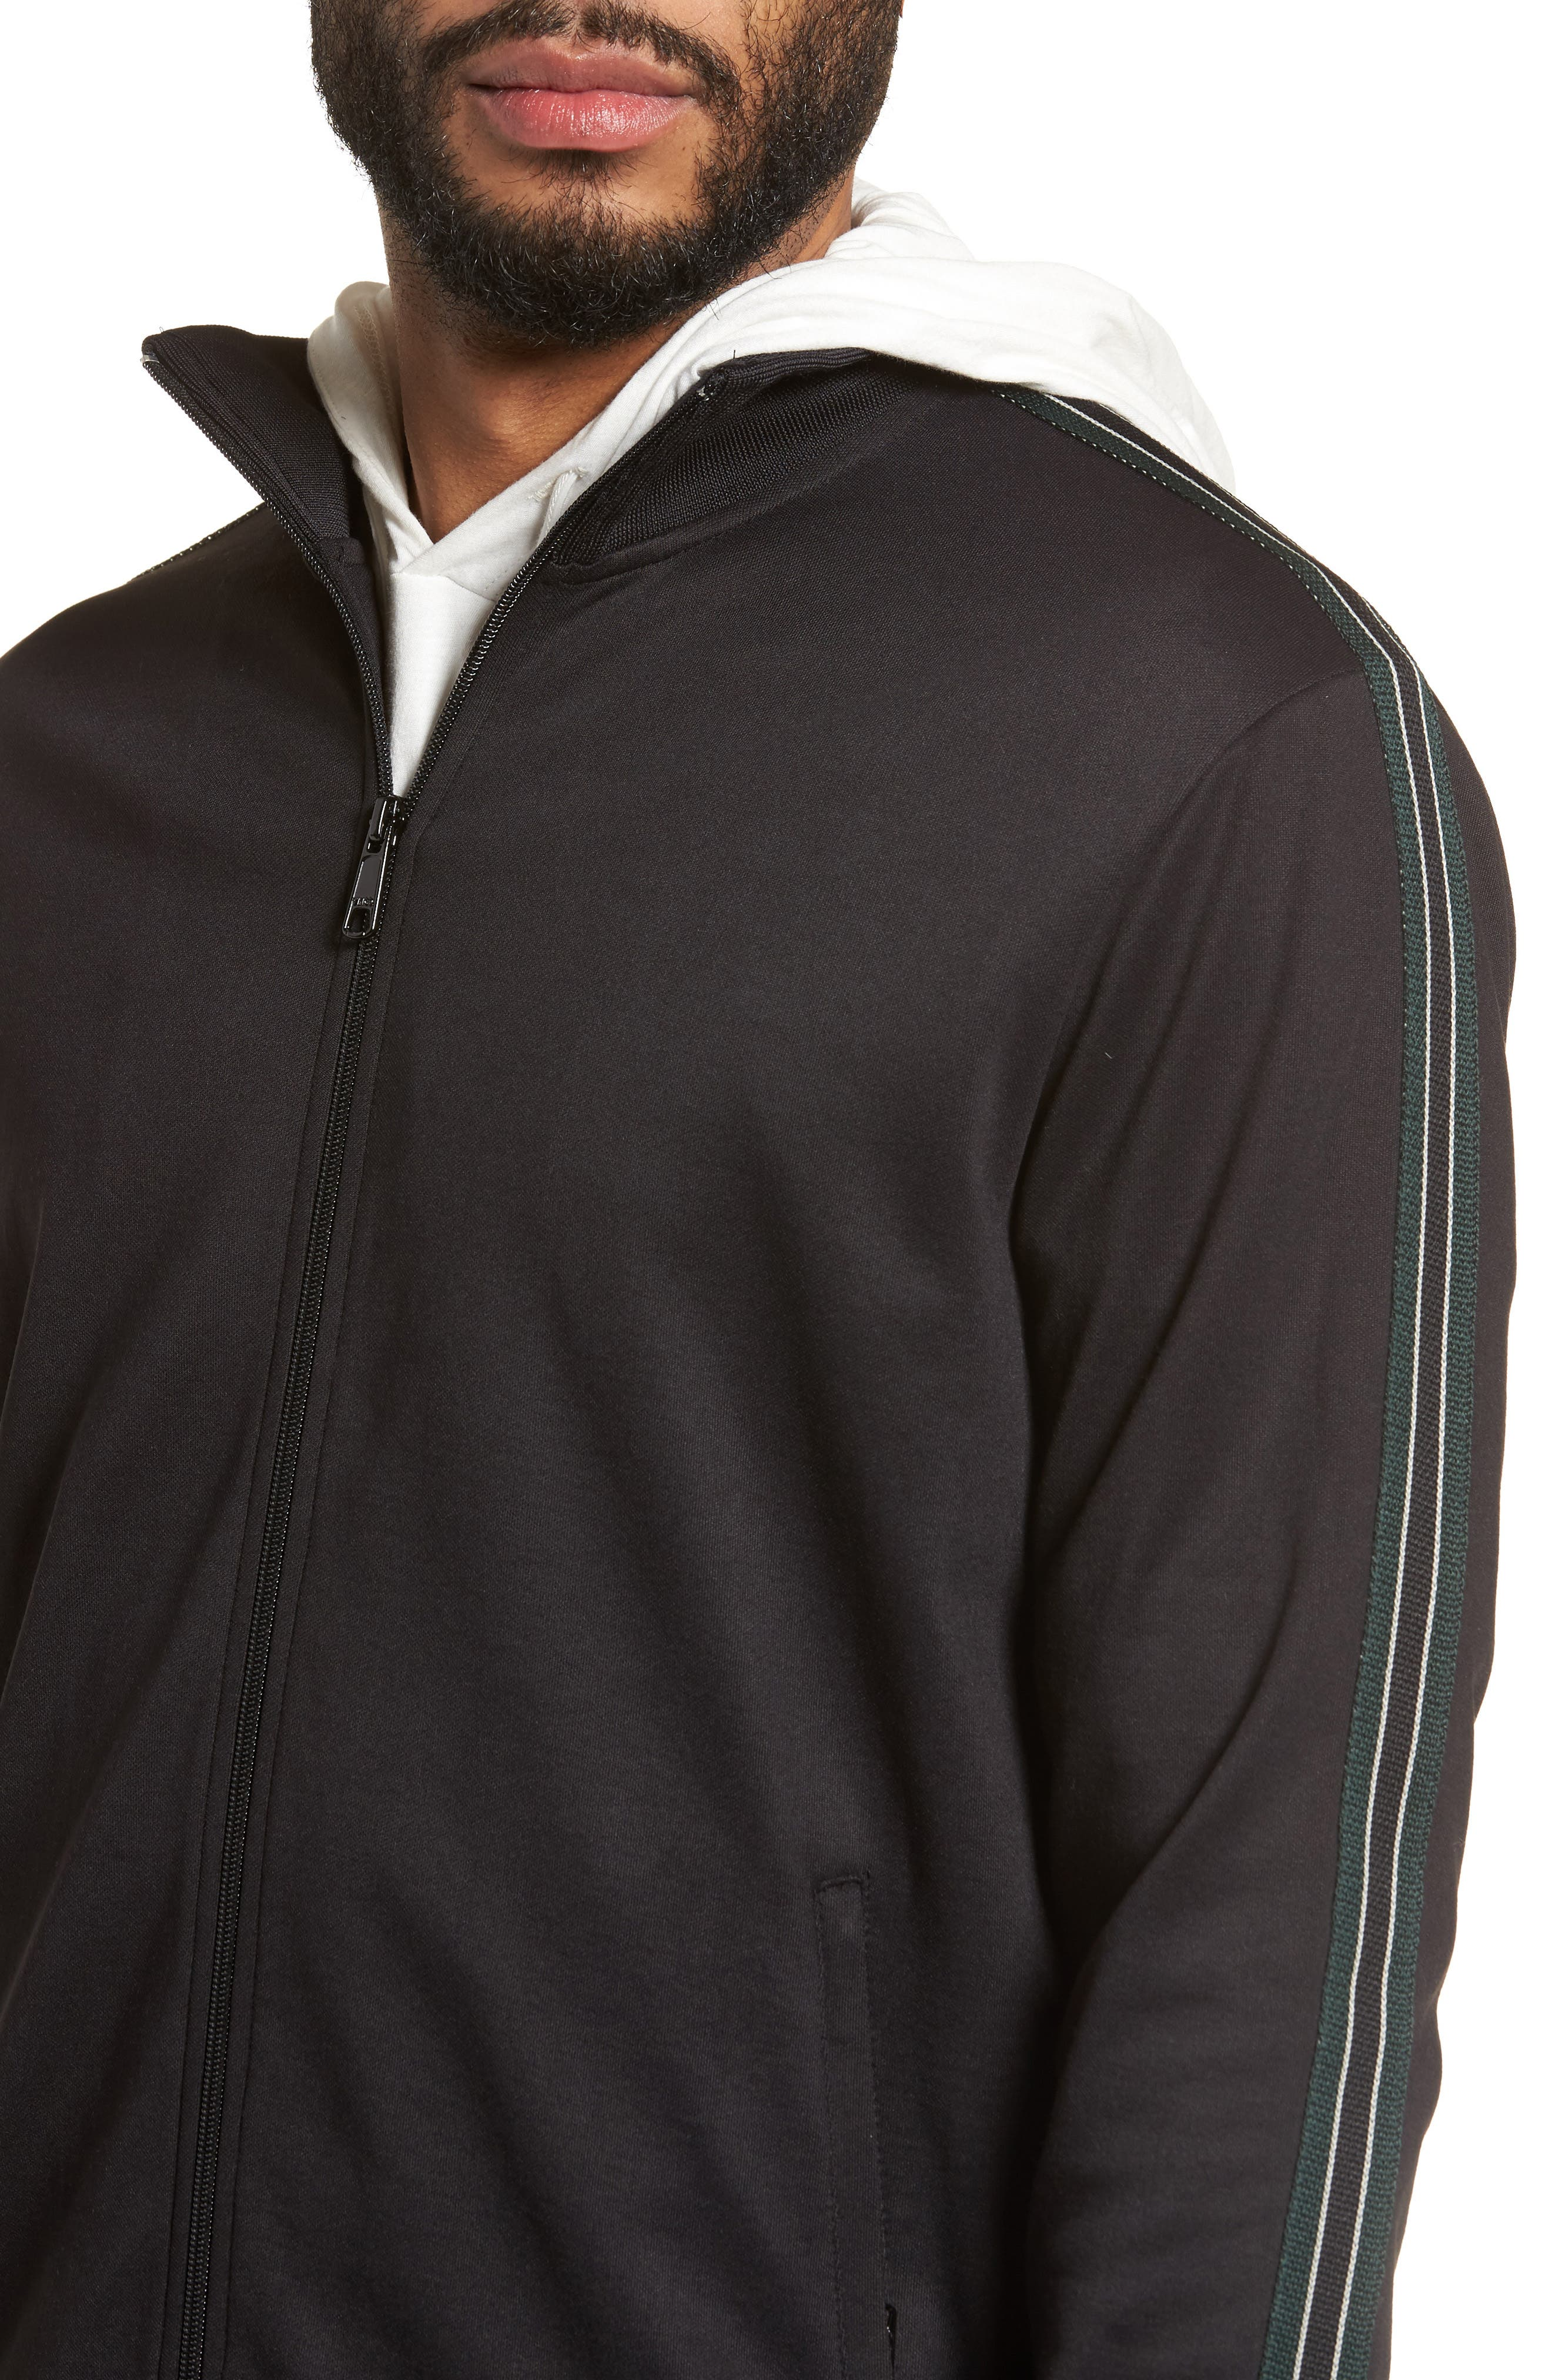 Regular Fit Track Jacket,                             Alternate thumbnail 4, color,                             001